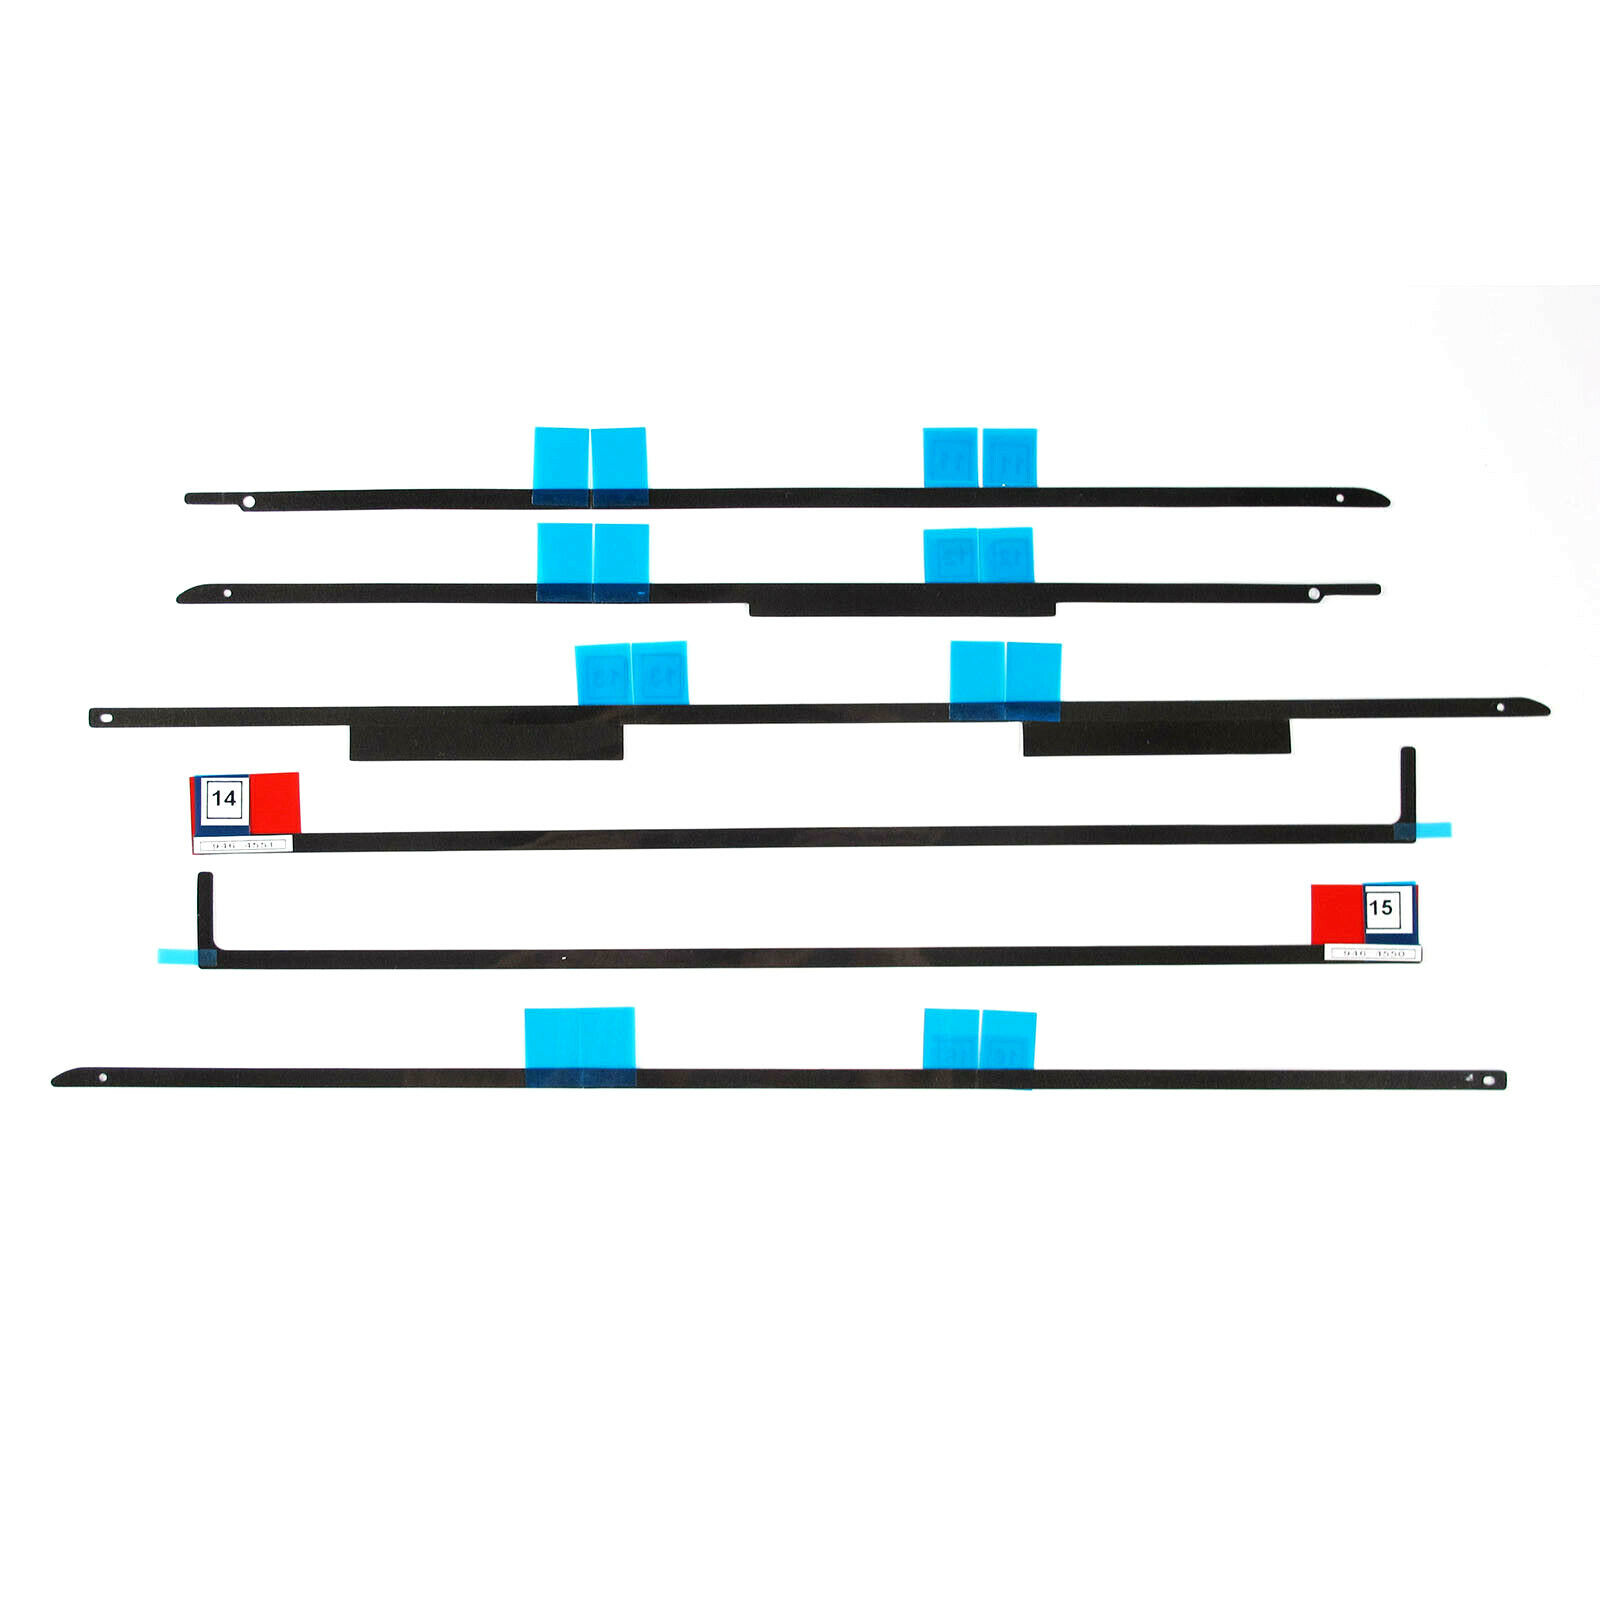 New 076-1419 iMac LCD Adhesive Strips Kit for iMac 27-inch 2012/2015 US 946-4548